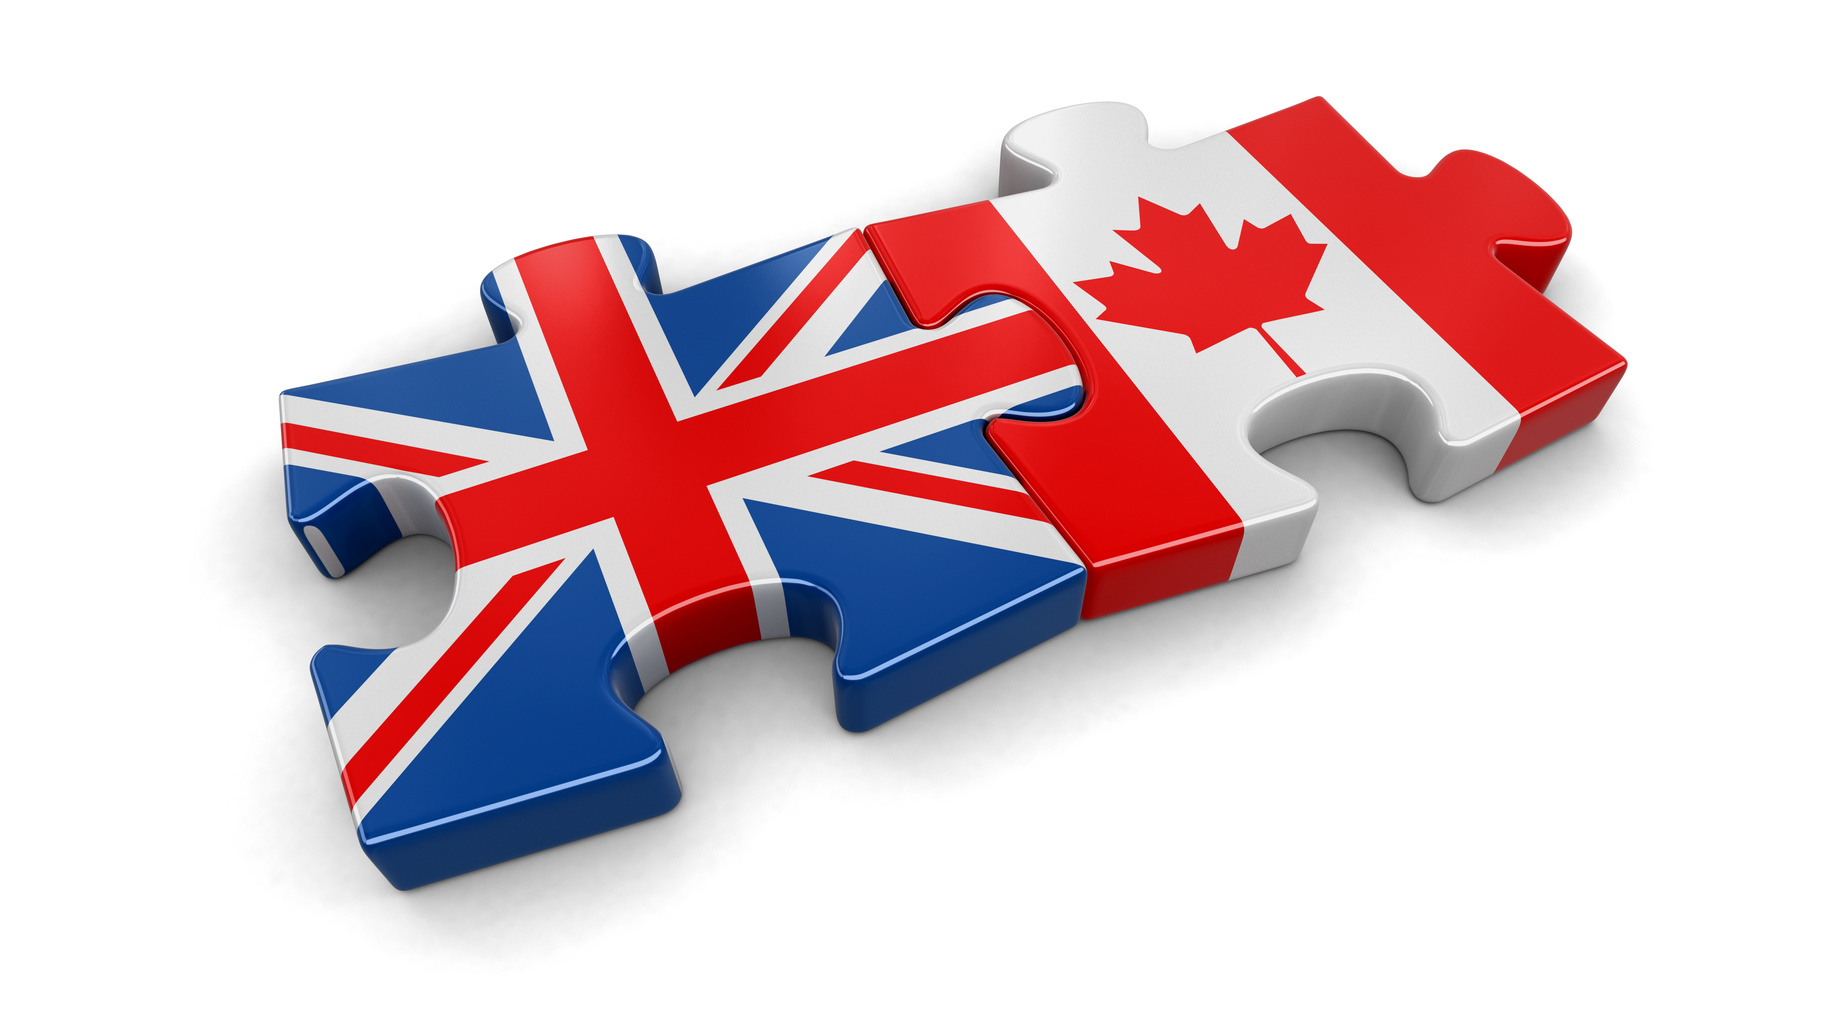 UK and Canadian puzzle from flags. Image with clipping path